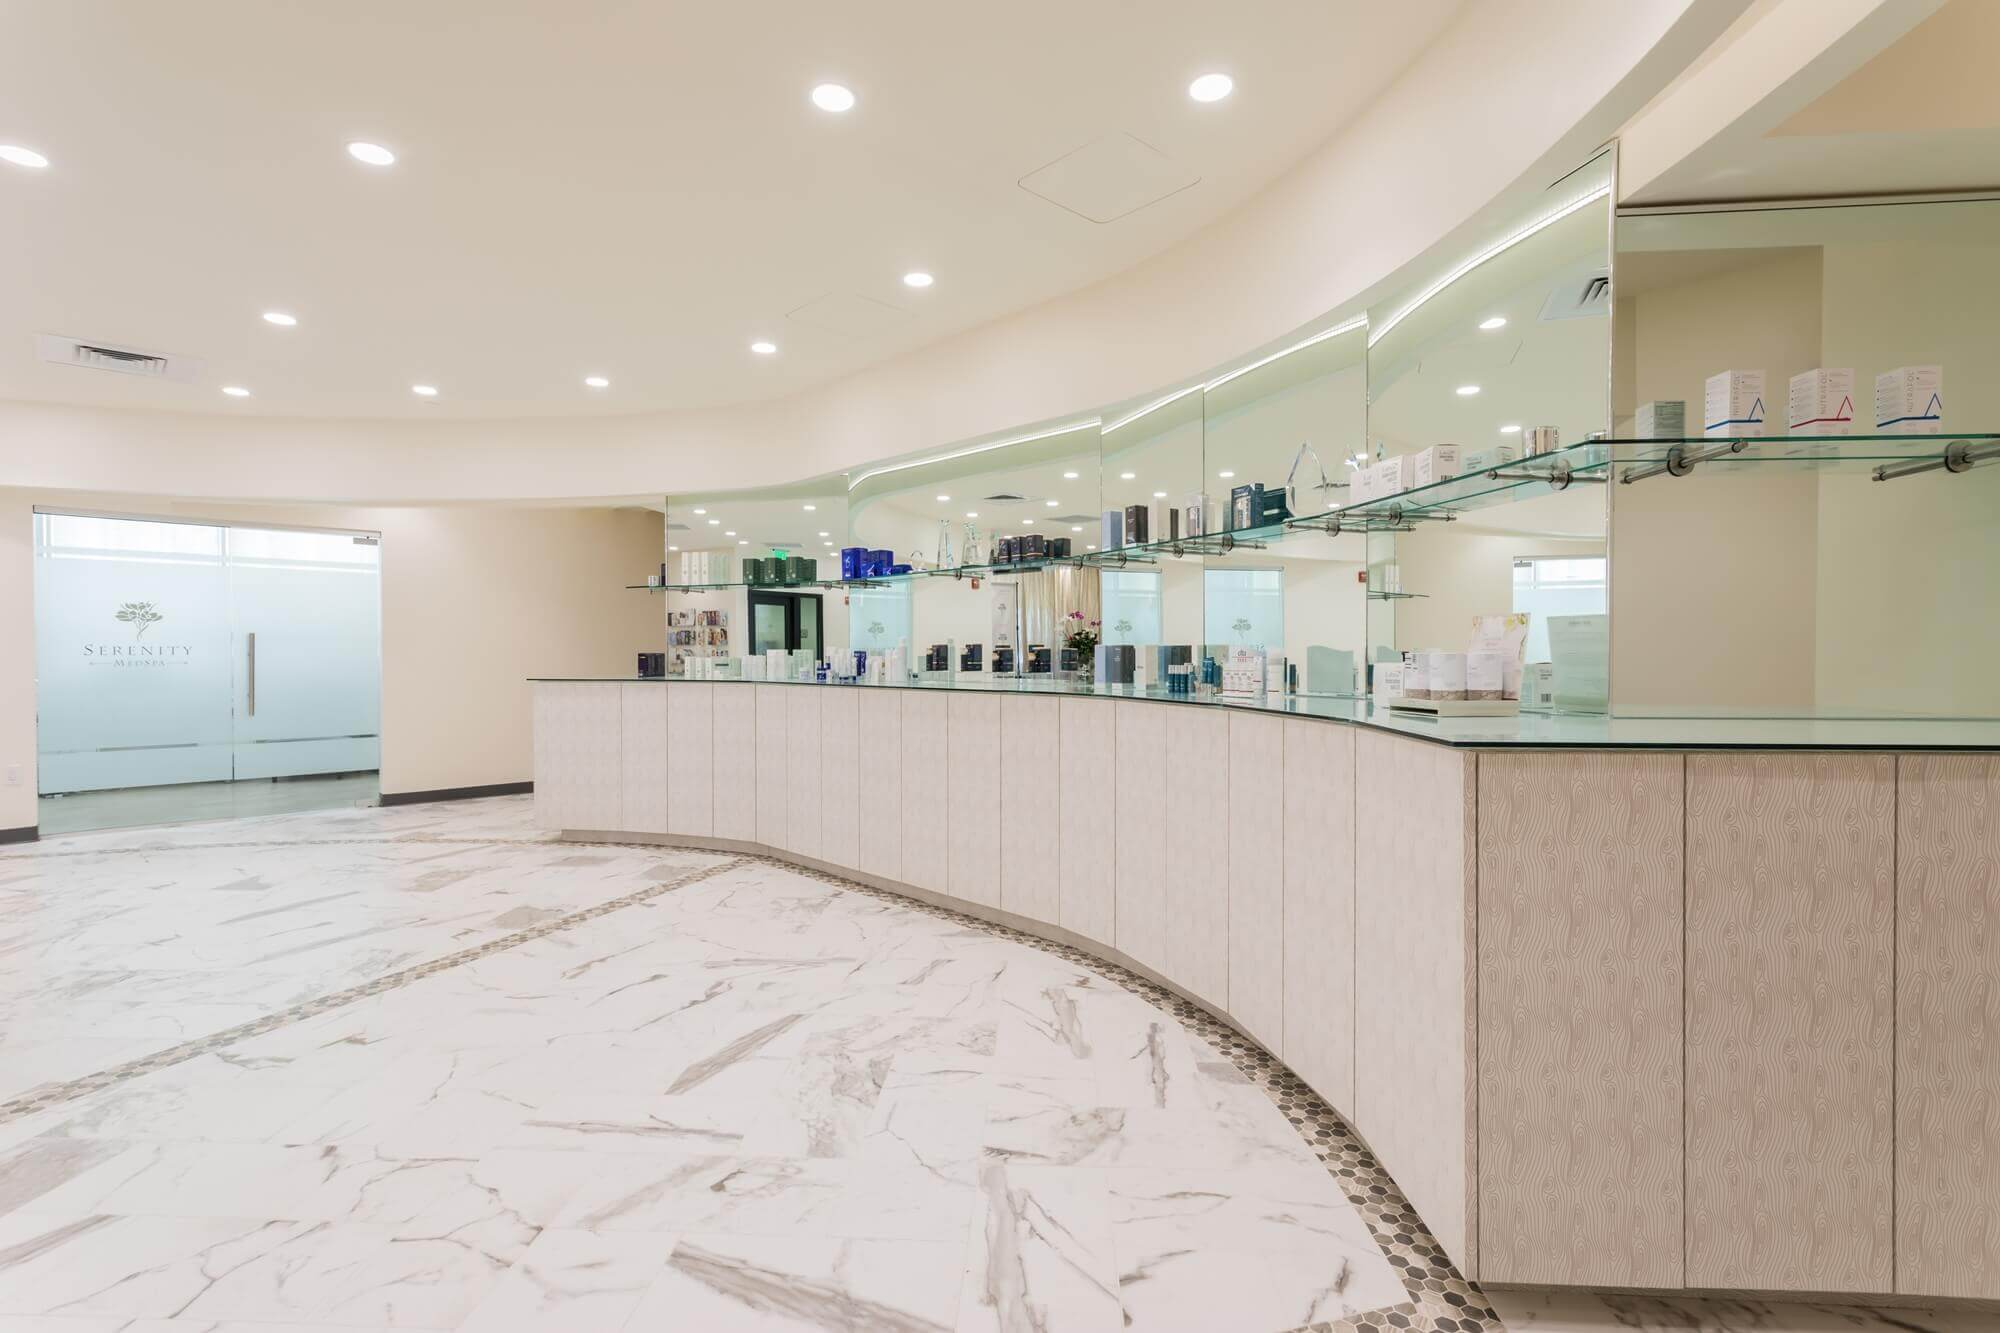 A large room in serinity medspa having white color ceiling